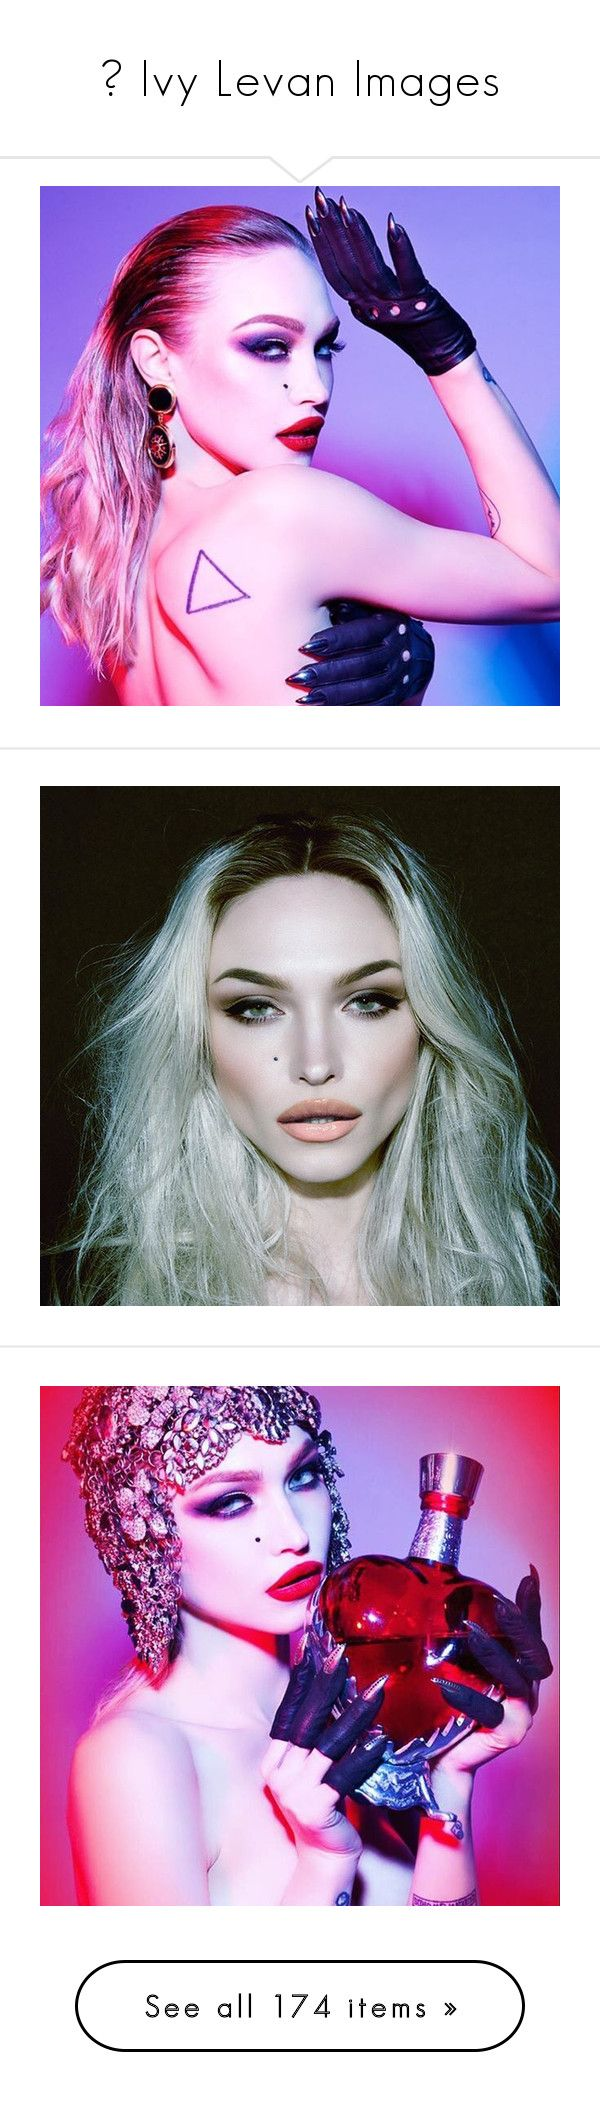 Ivy Levan Nude Classy 47 best ivy levan images on pinterest   hedera helix, ivy and ivy